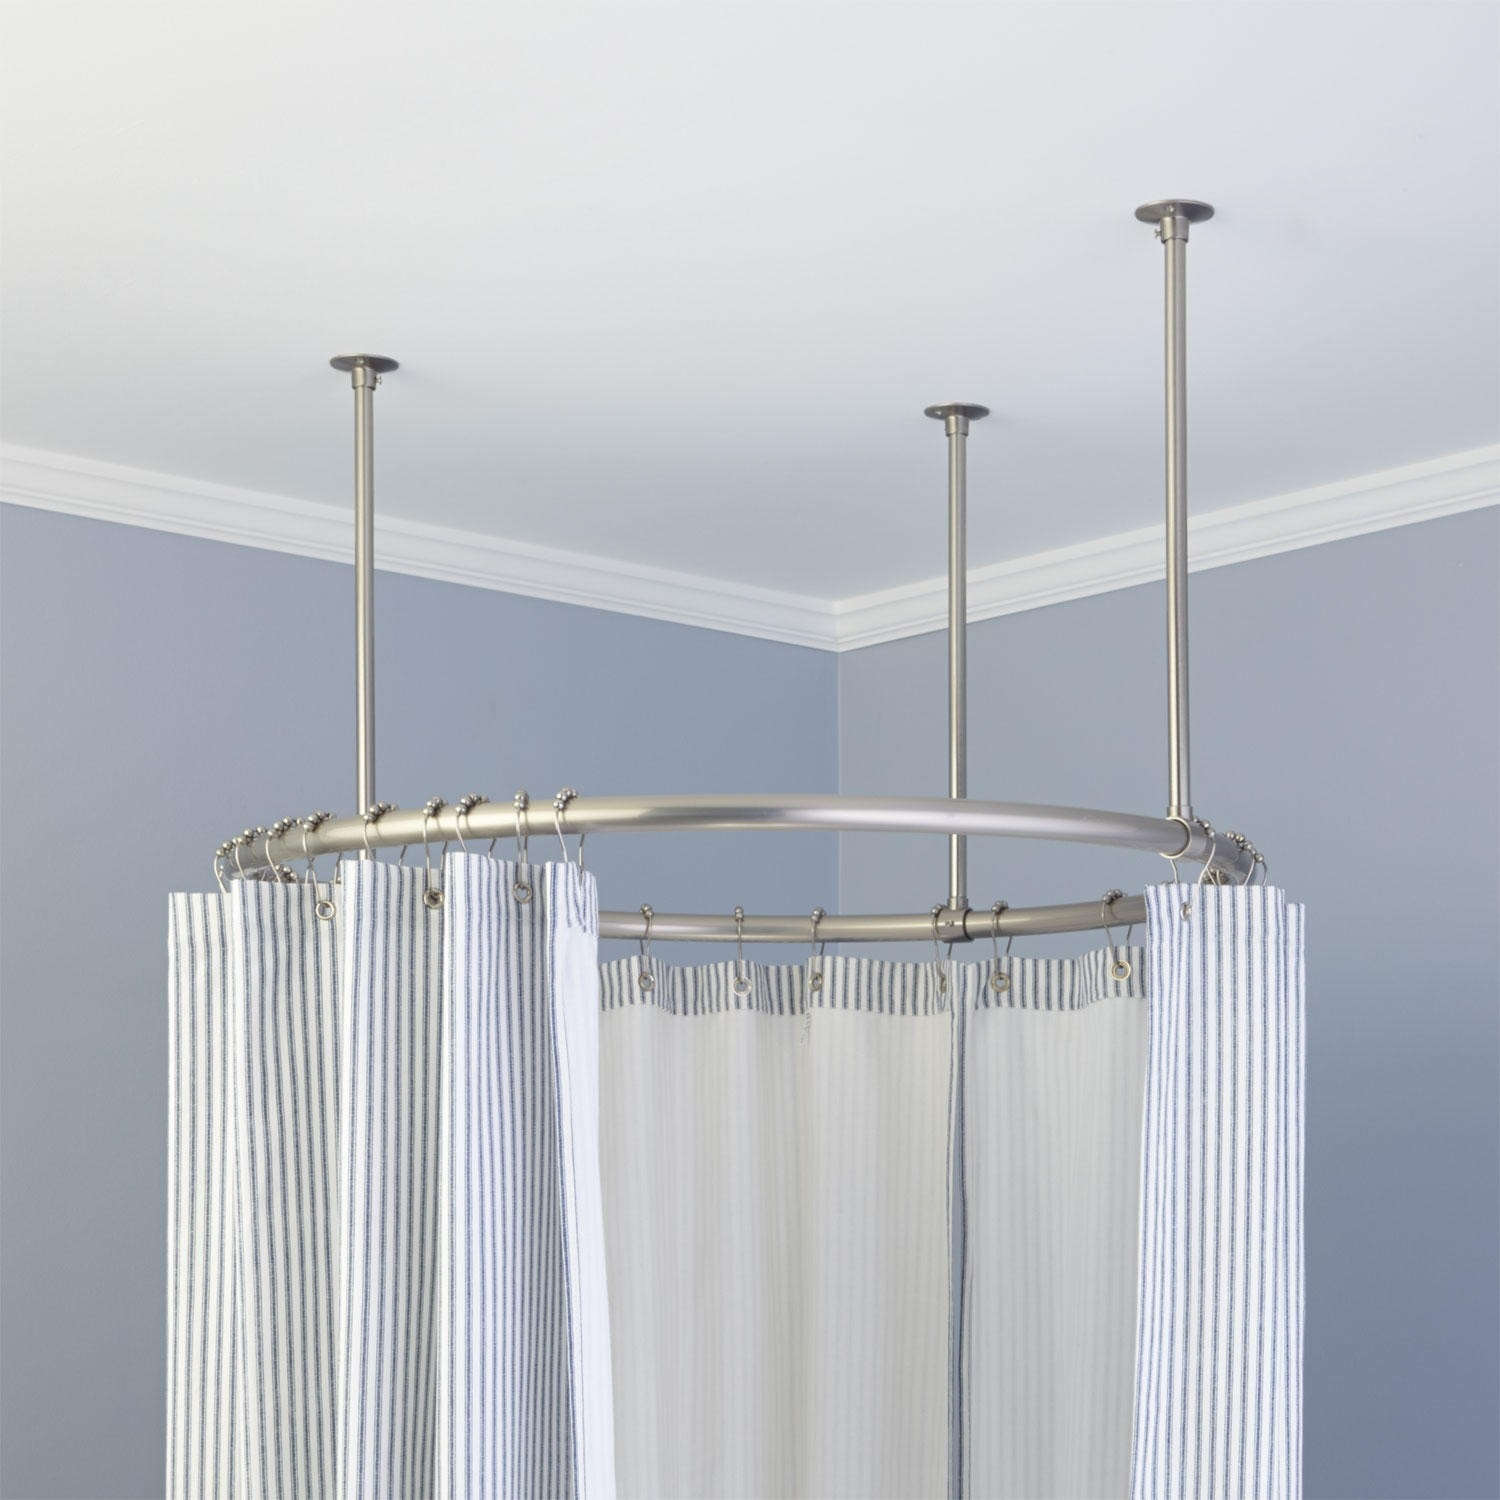 Clawfoot Tub Shower Curtain Rods Signature Hardware Inside Claw Tub Shower Curtains (Image 14 of 25)